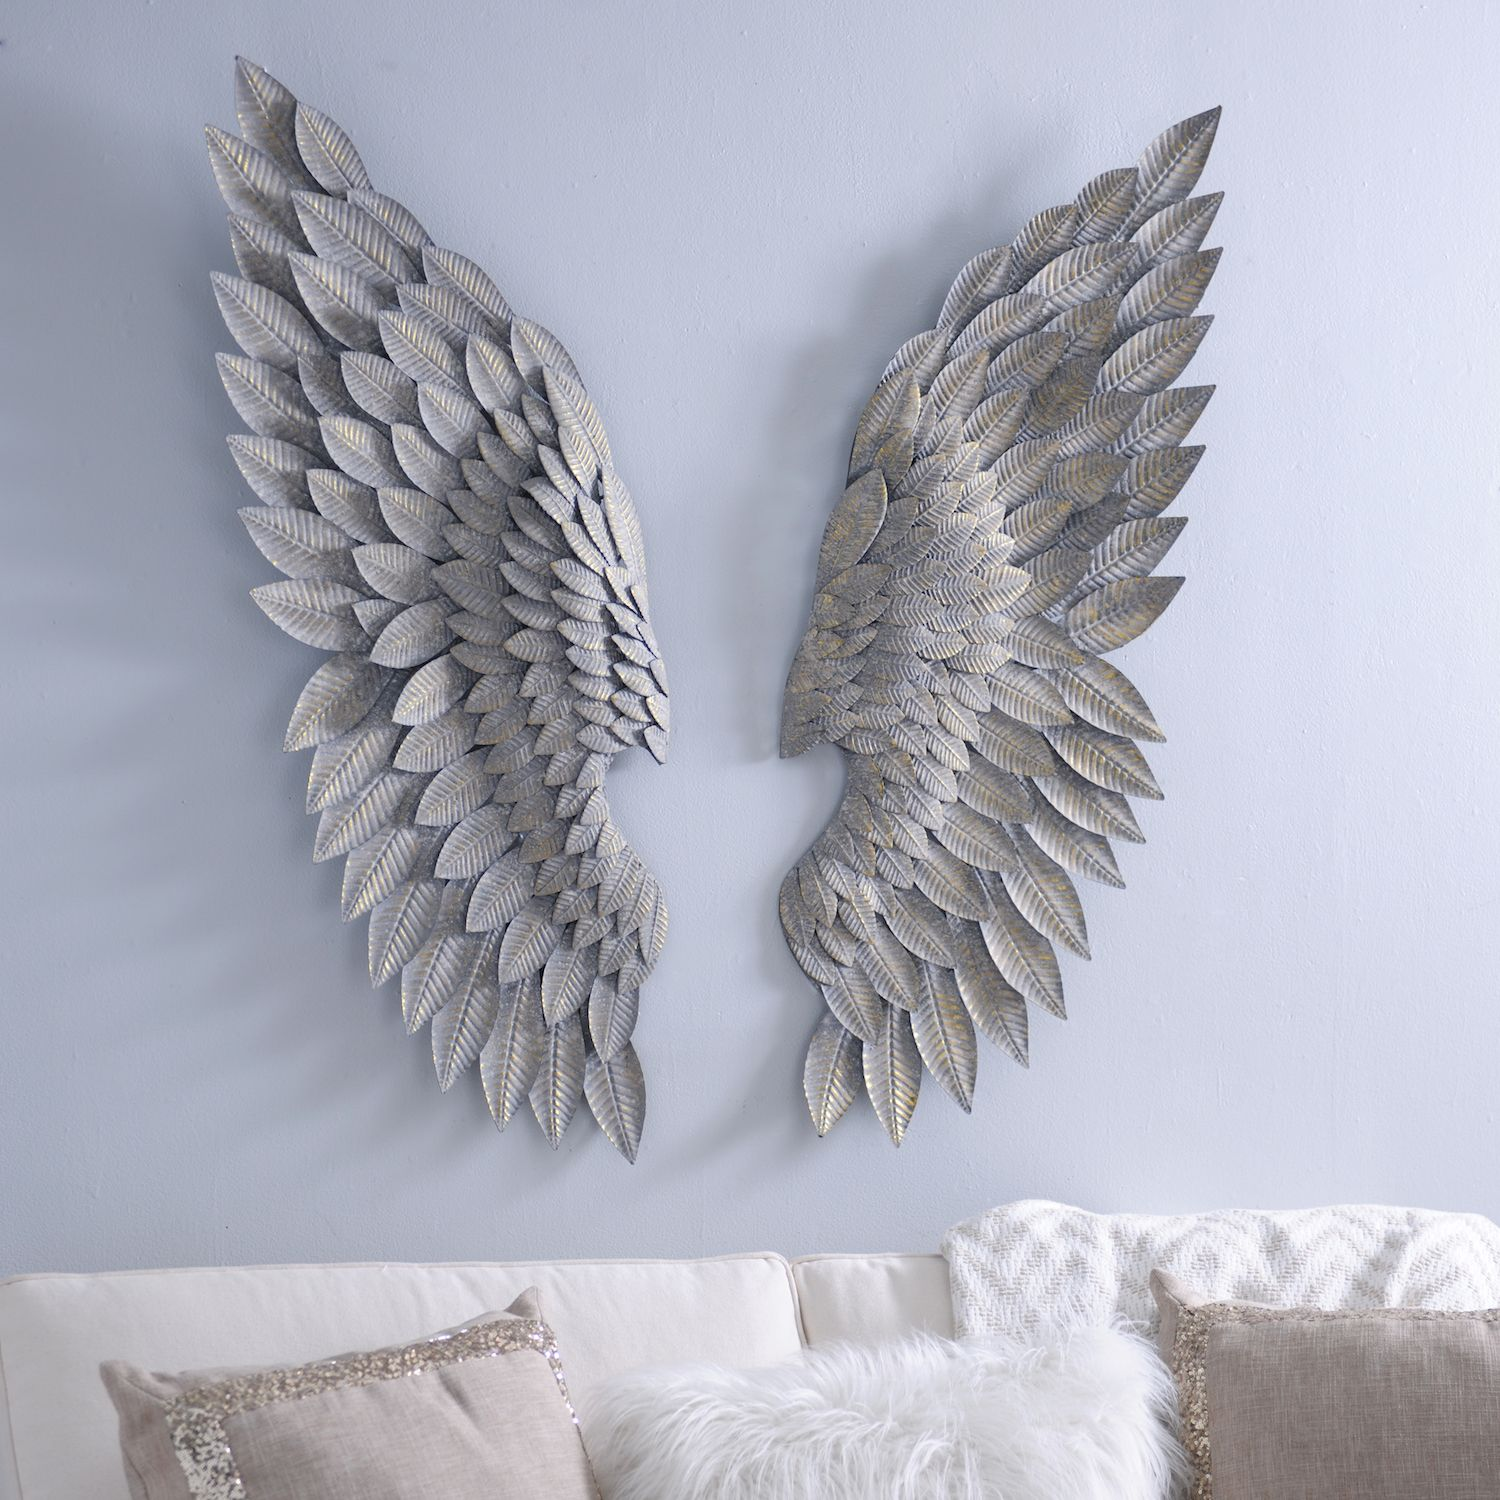 Express your unique home style with the brushed gold angel wing plaques from kirklands